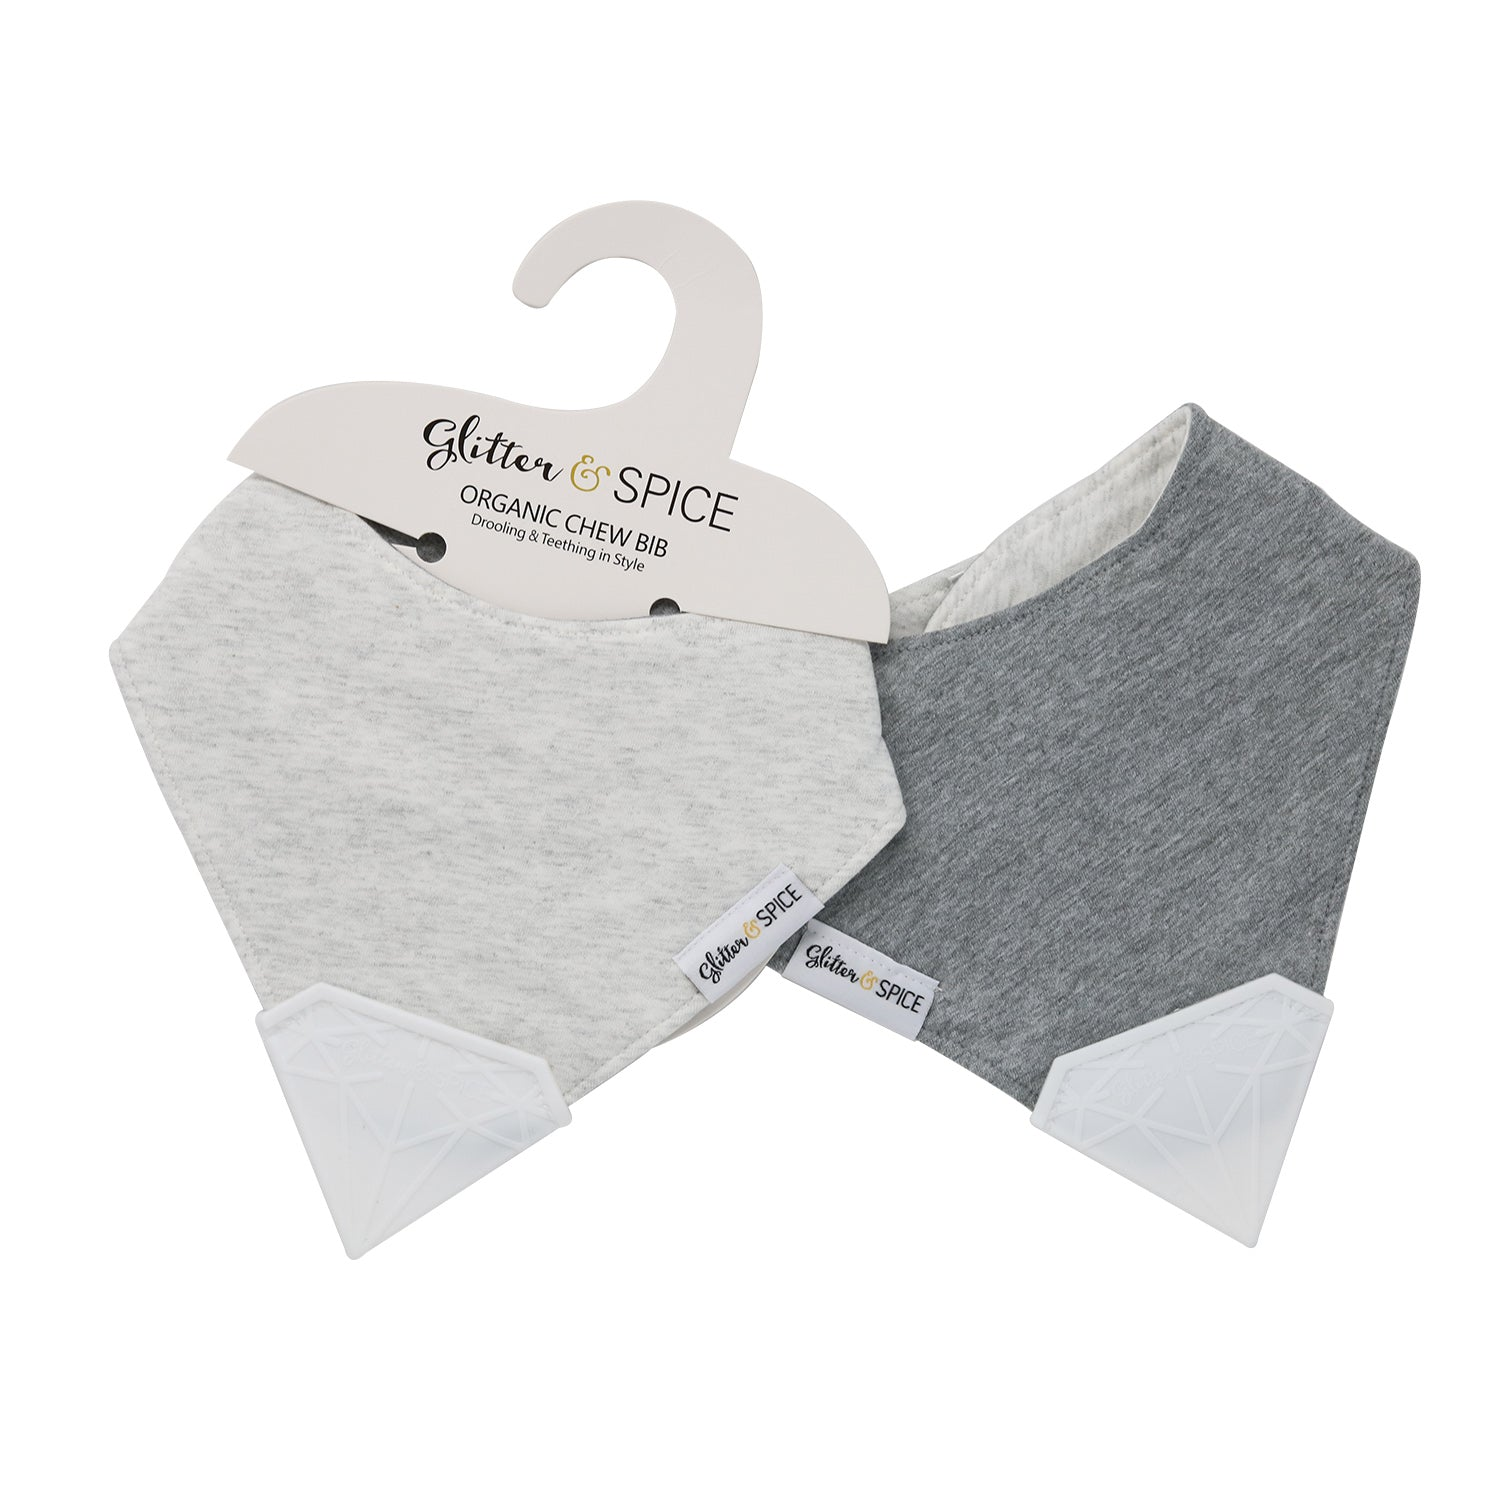 Double Sided Organic Chew Bib - Coal Harbour / Heather Gray